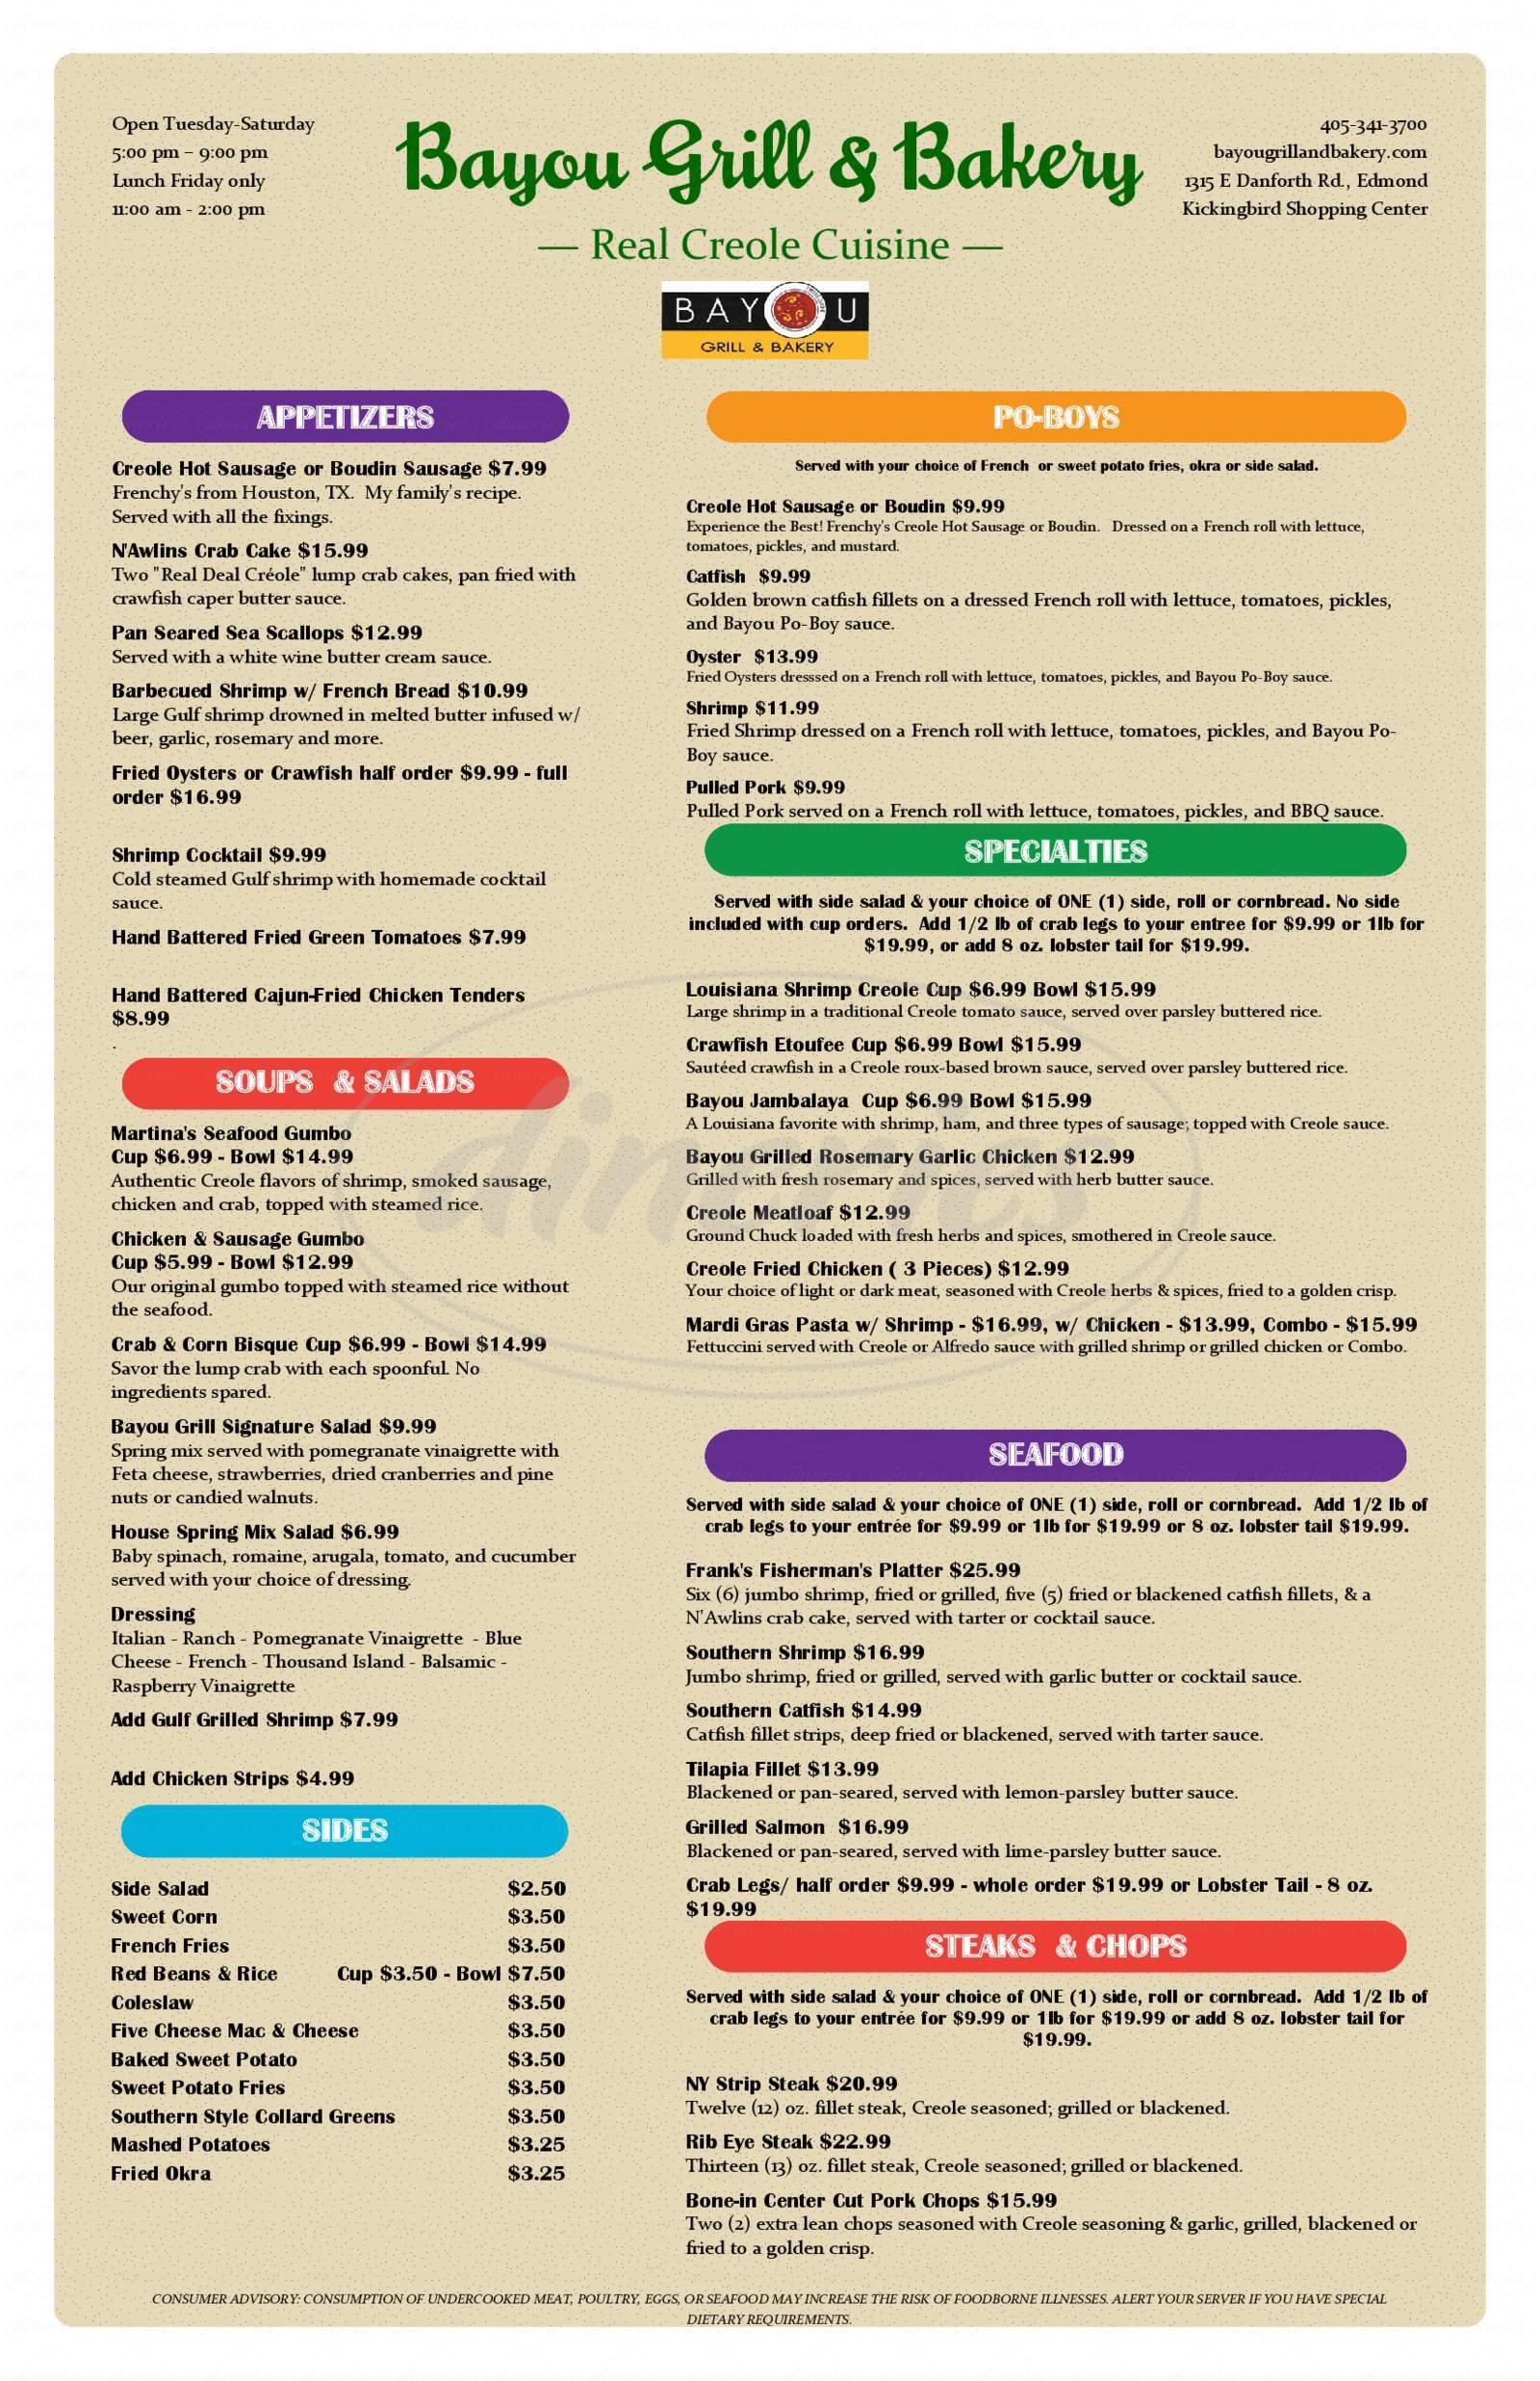 menu for Bayou Grill & Bakery